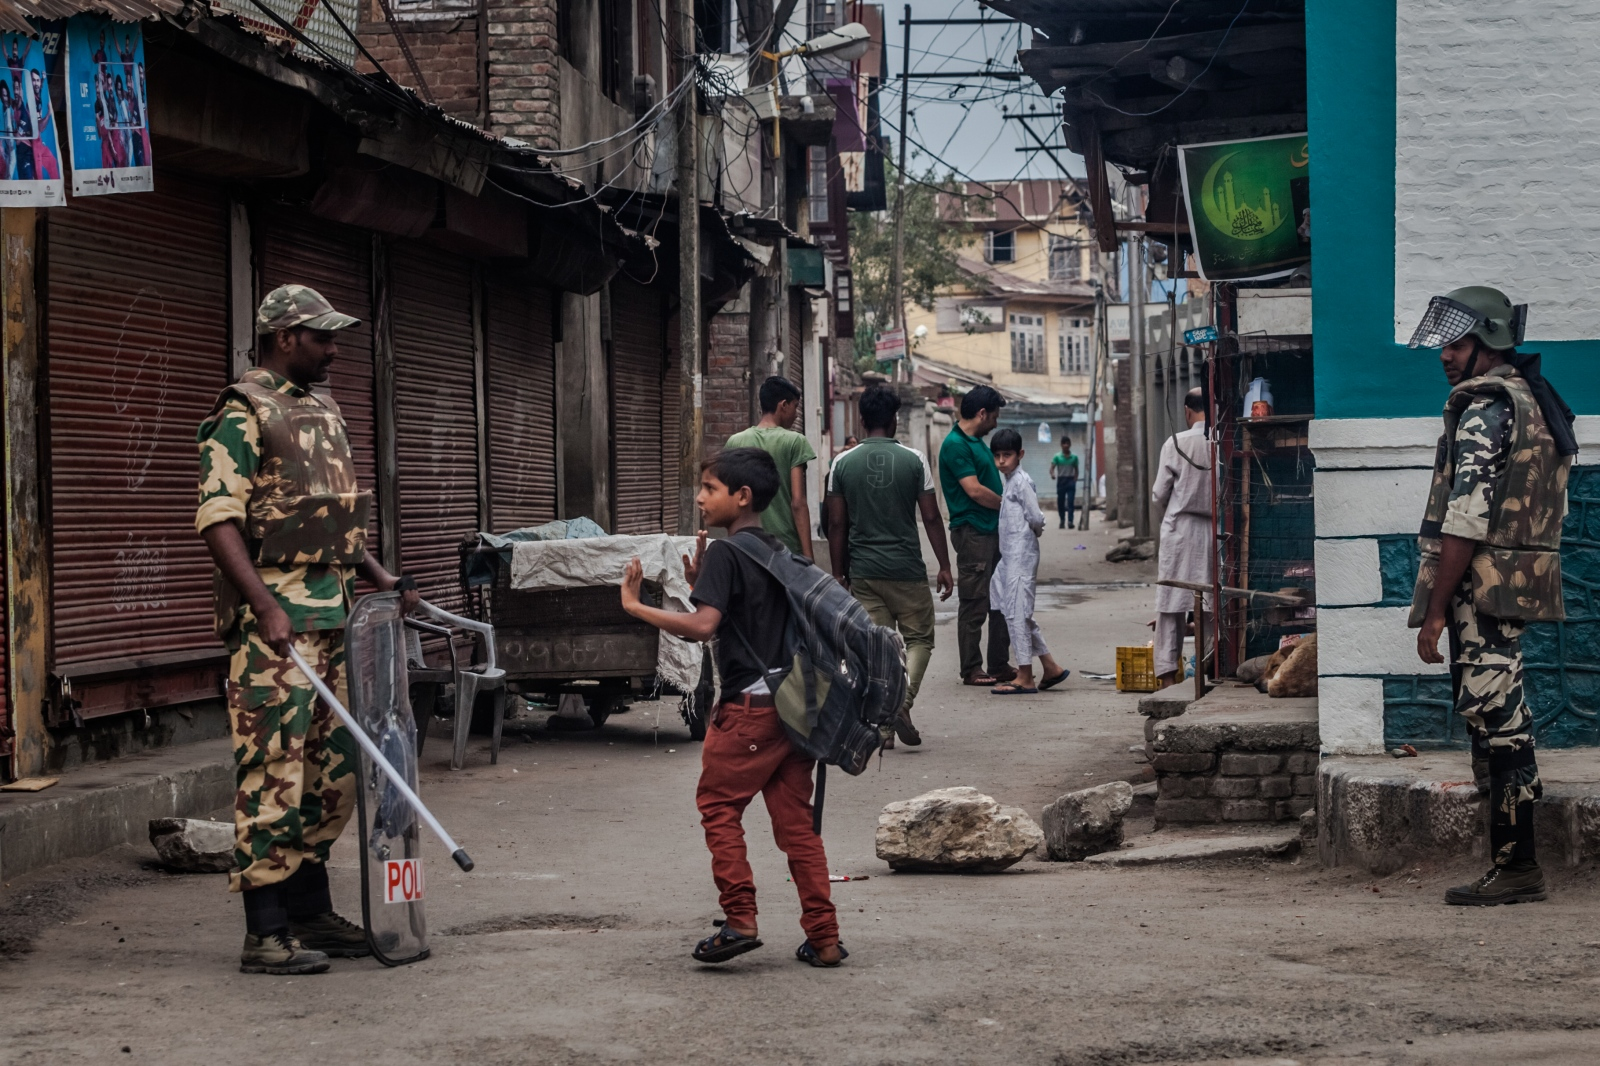 A Kashmiri child gestures as he walks past Indian Central Reserve Police Force (CRPF) personnel standing guard during a strict curfew in downtown Srinagar on July 22, 2016.